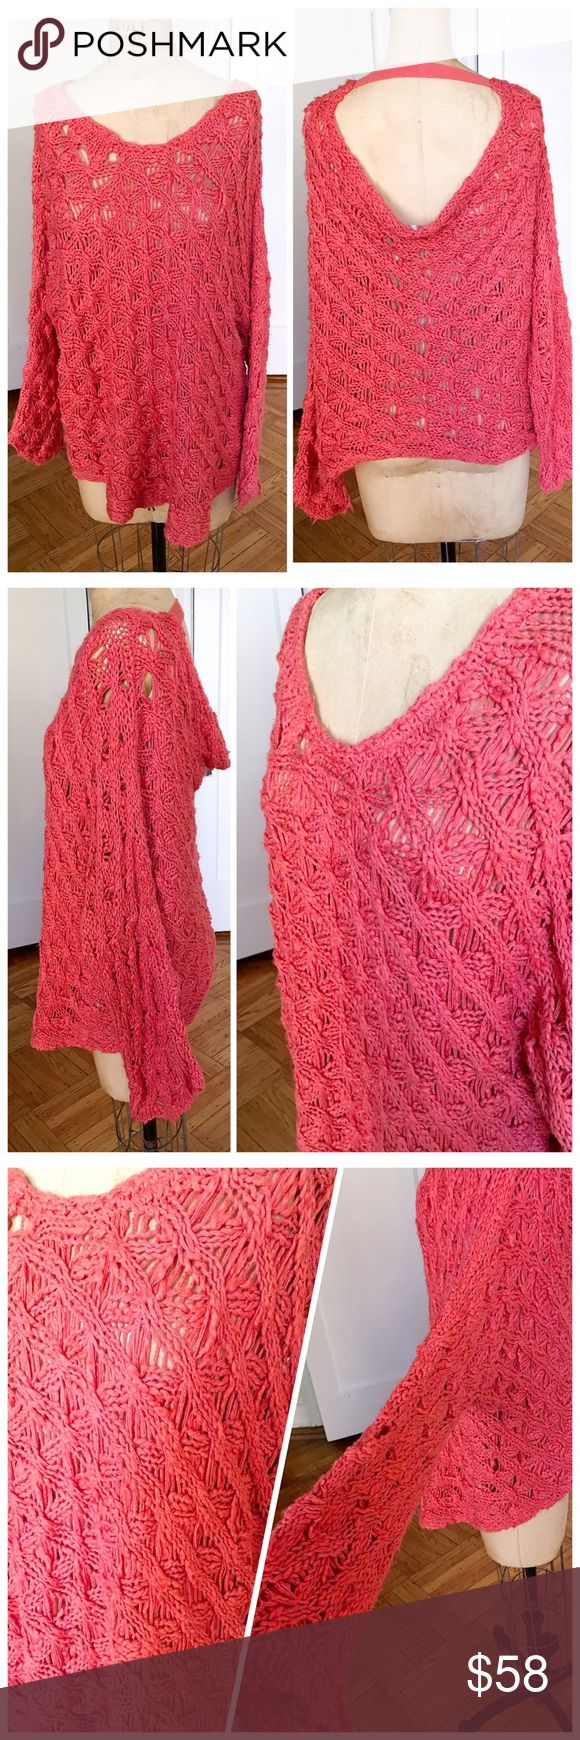 NWOT Free People coral over size crochet top NWOT Free People coral over sized slouchy crochet top with low back. Size small. Any imperfections are true to the tops design and meant for its specific style- worn in boho chic! Cotton and acrylic. Free People Tops Tunics